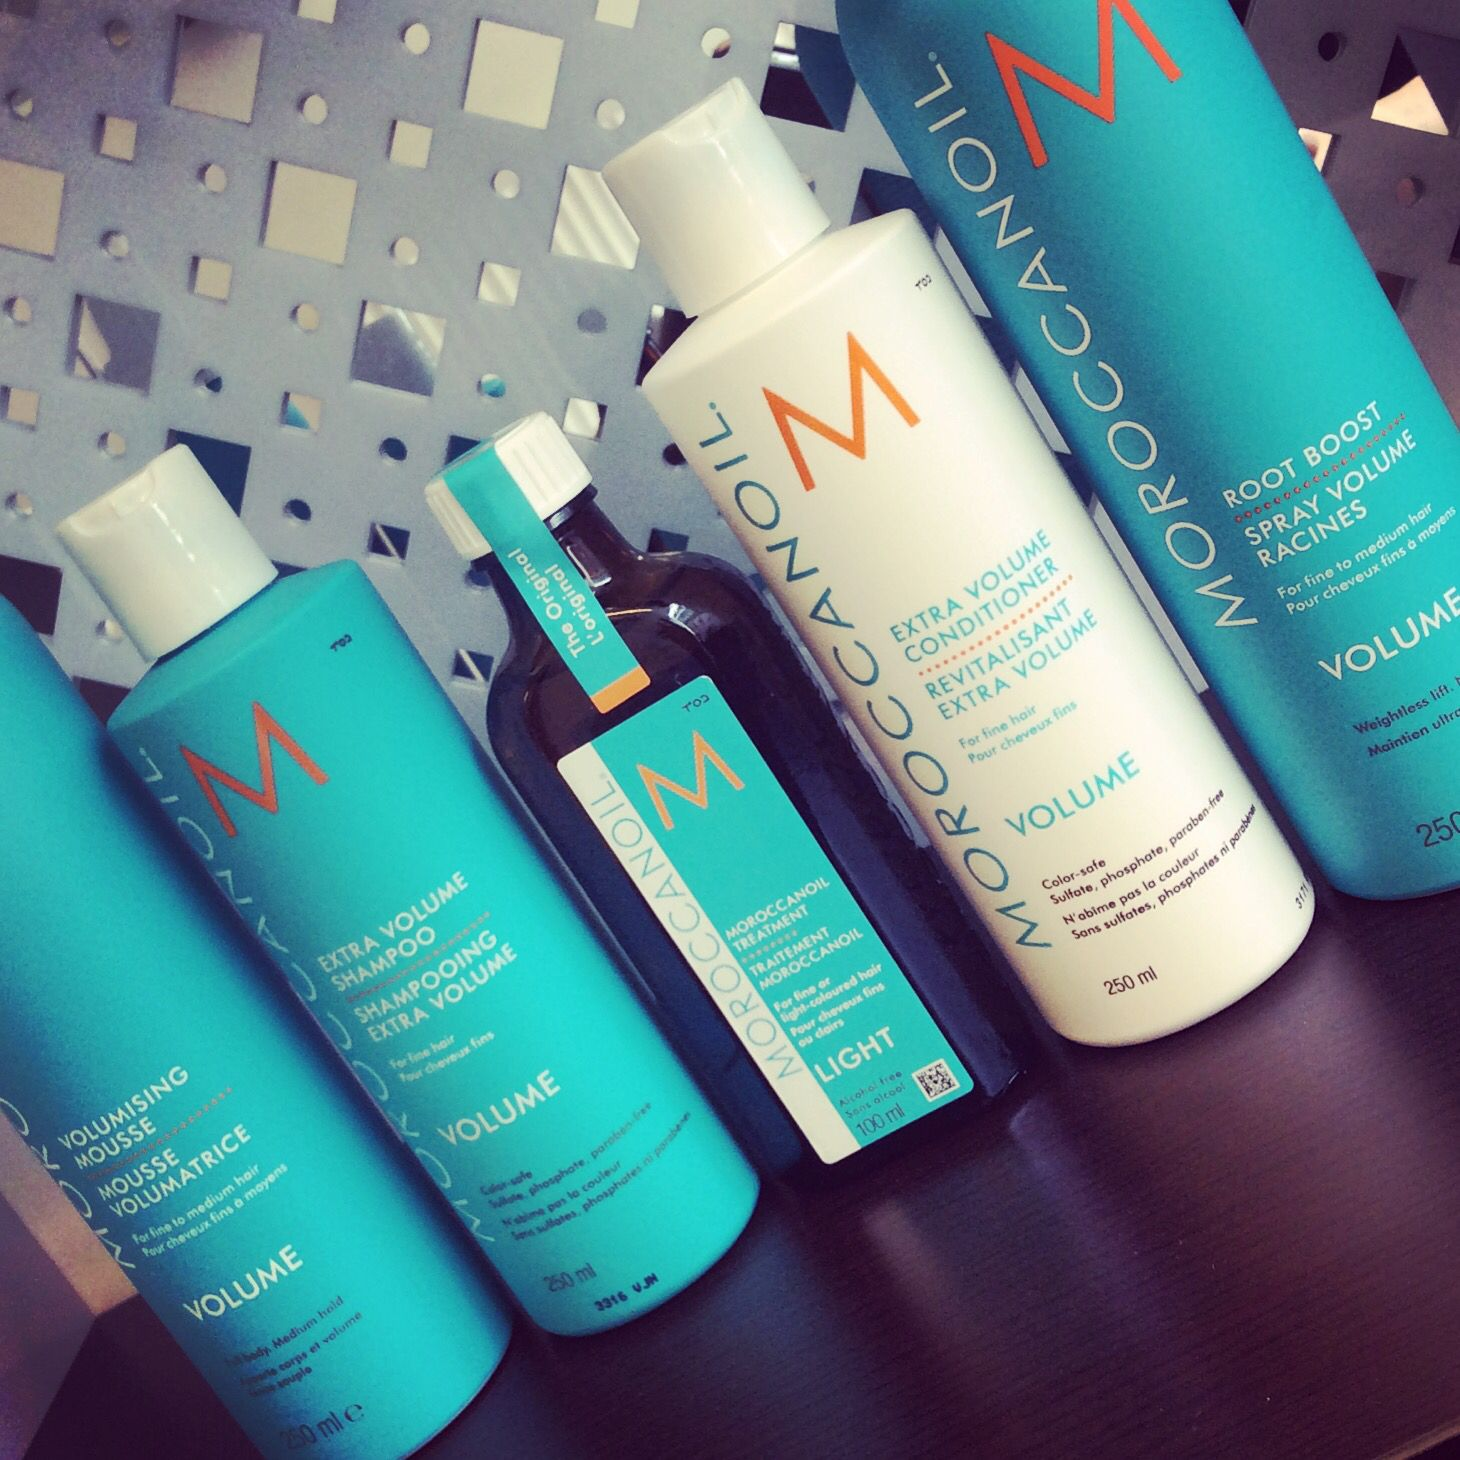 Pump up your hair with moroccanoil volumising collection